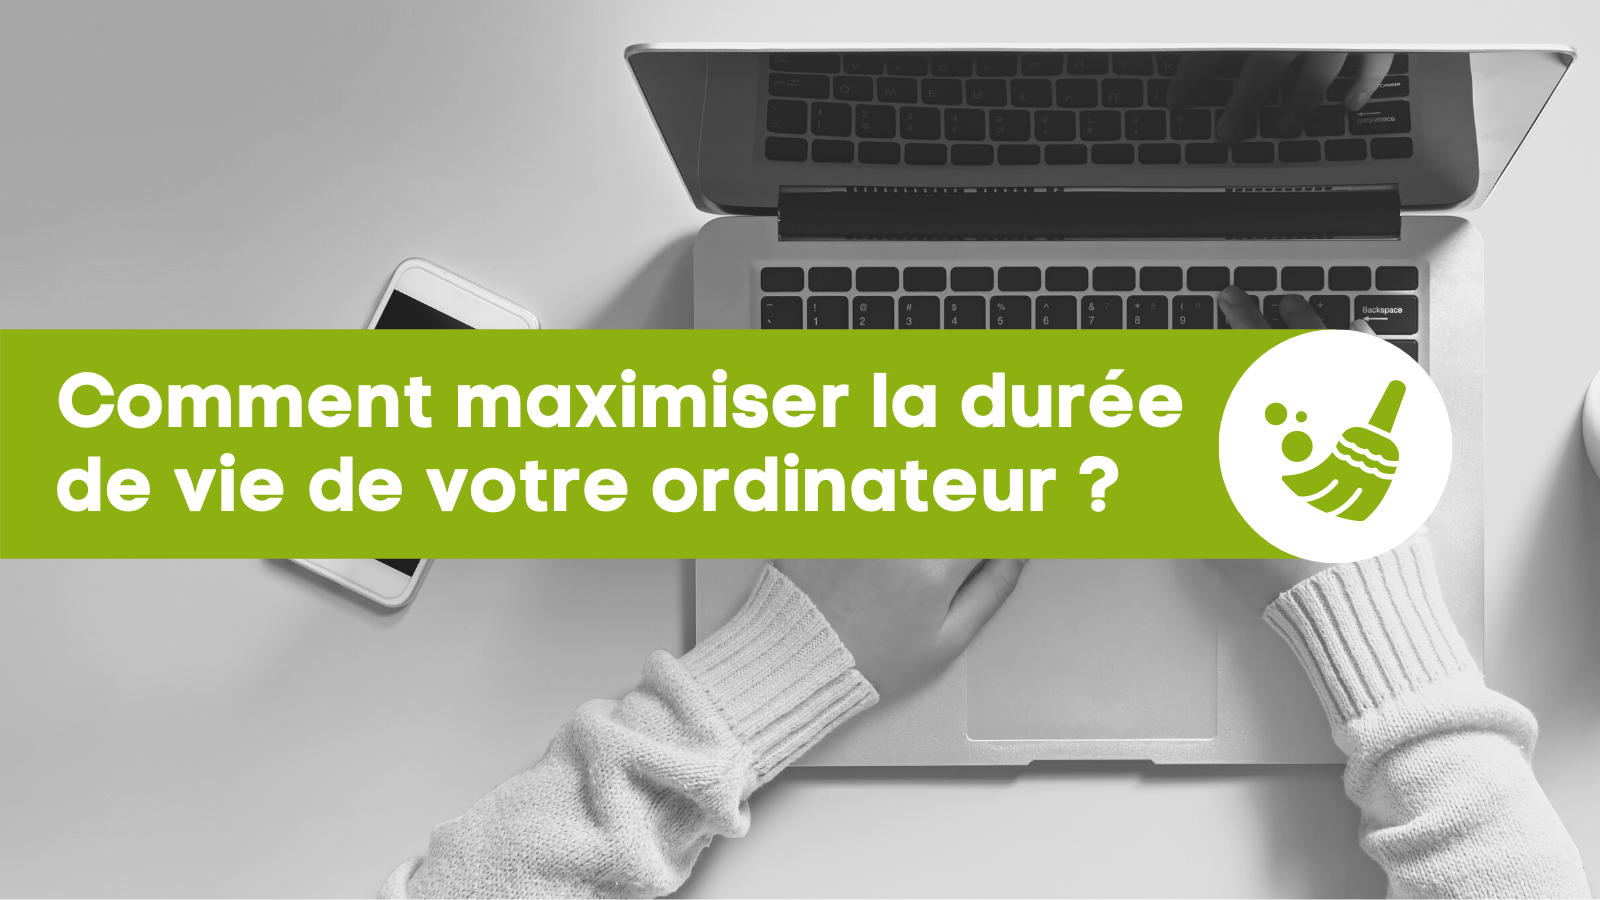 isagri-0321-vignette-article-maximiser-la-duree-de-vie-de-son-ordinateur